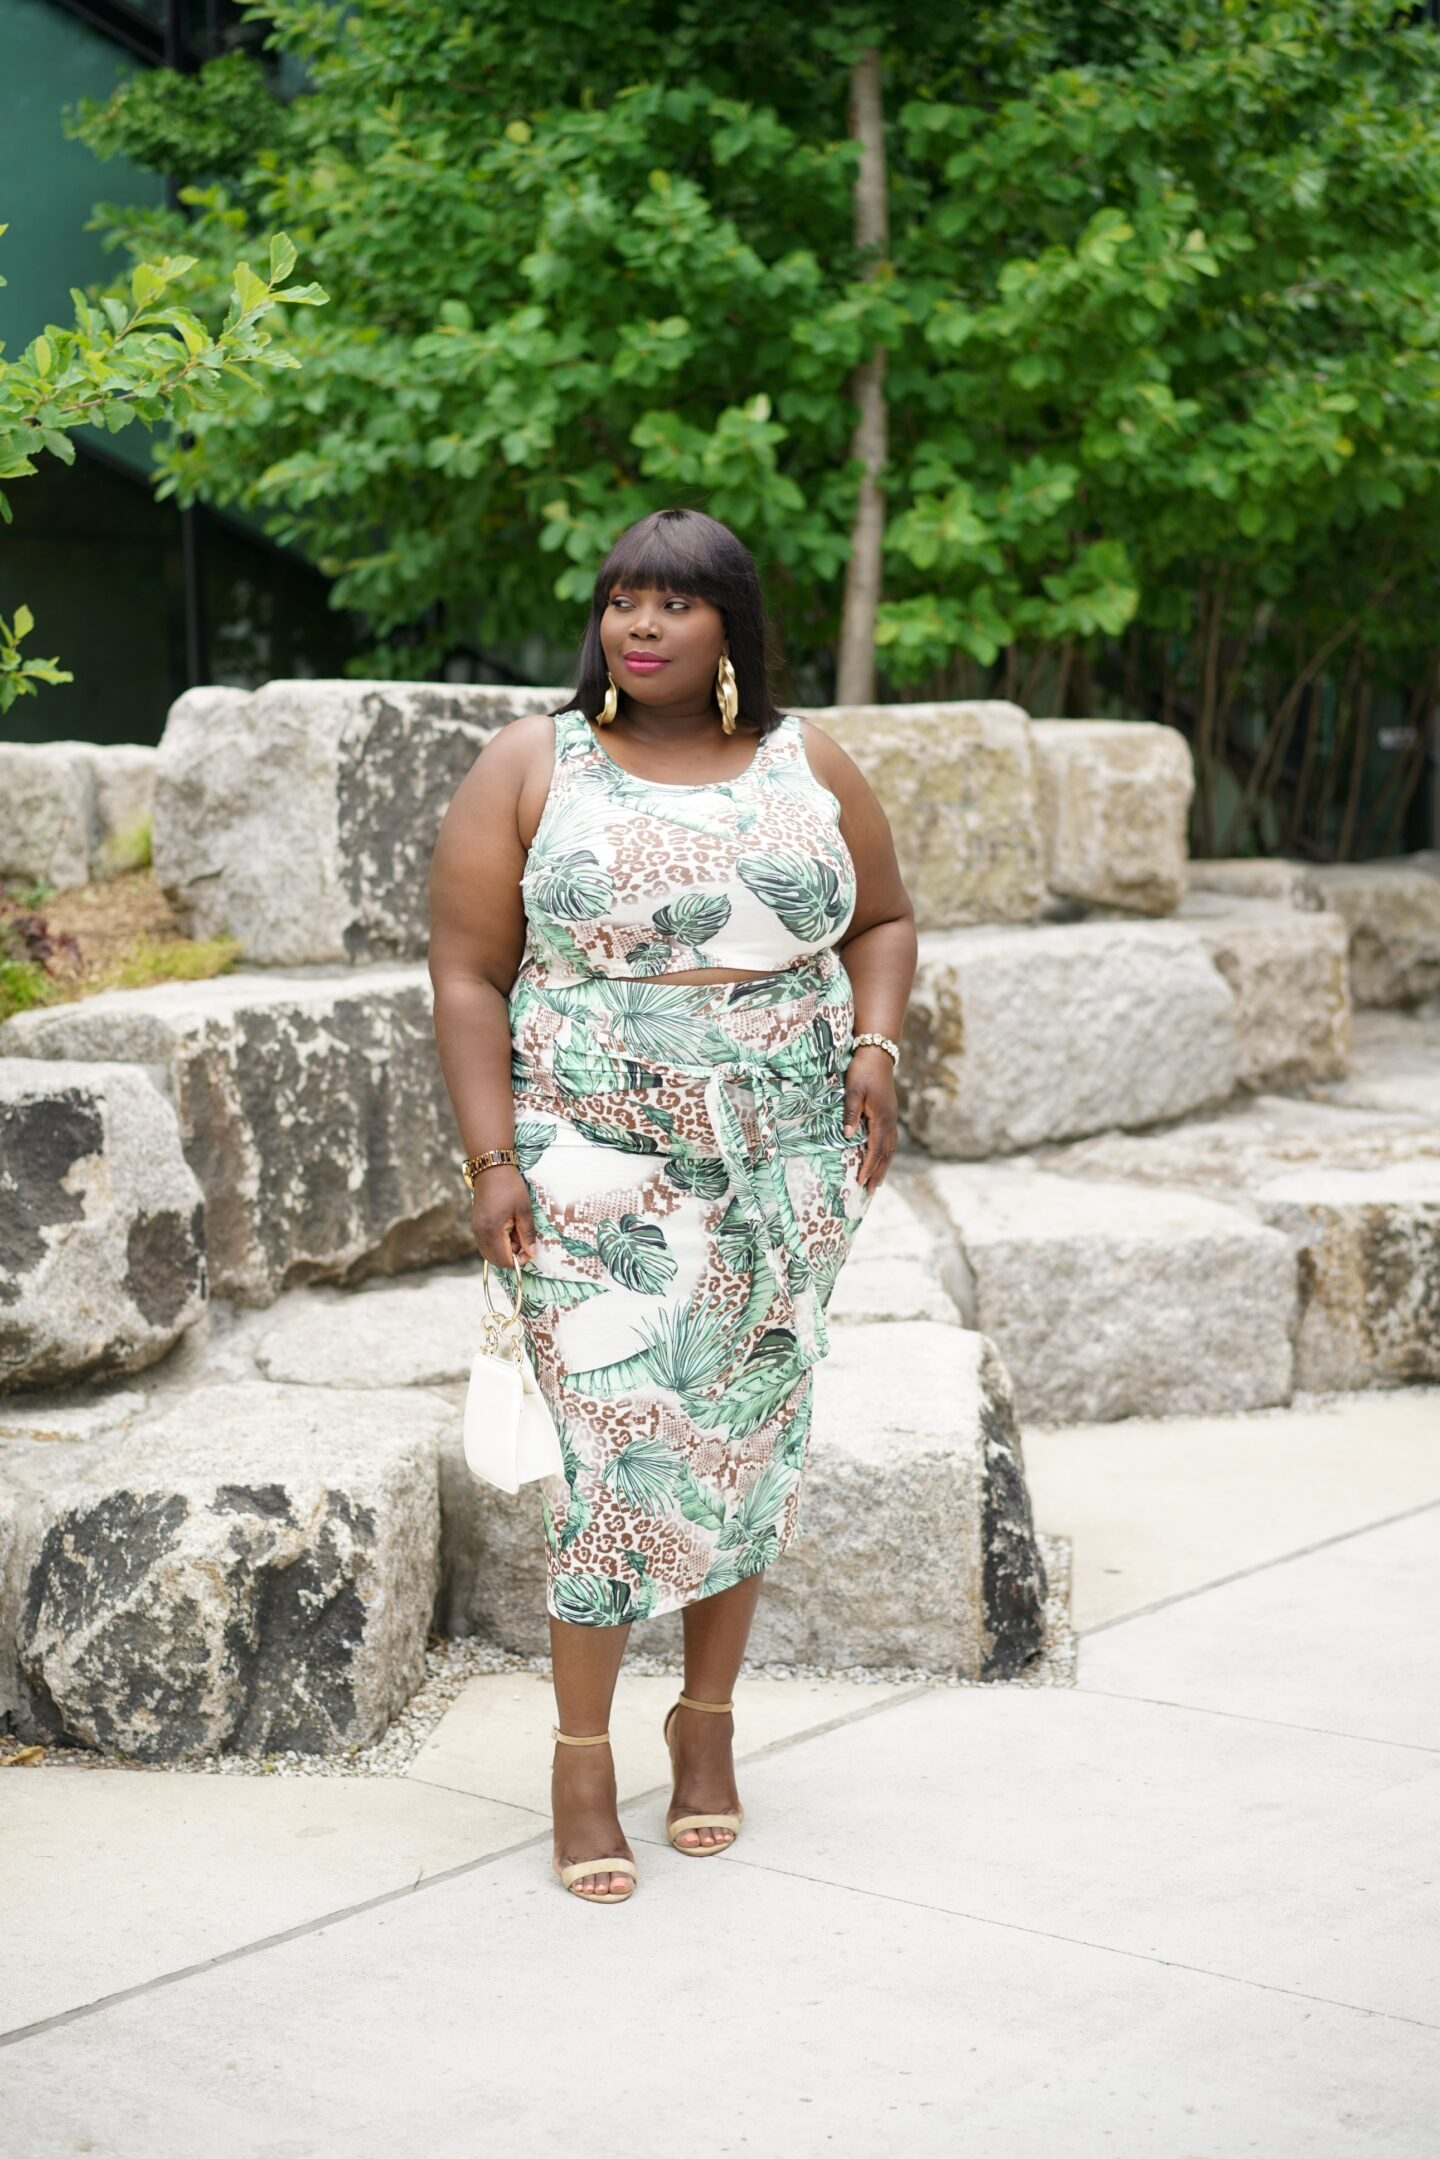 Looking for plus size summer outfits? Checkout this tropical print skirt set from Amazon Fashion